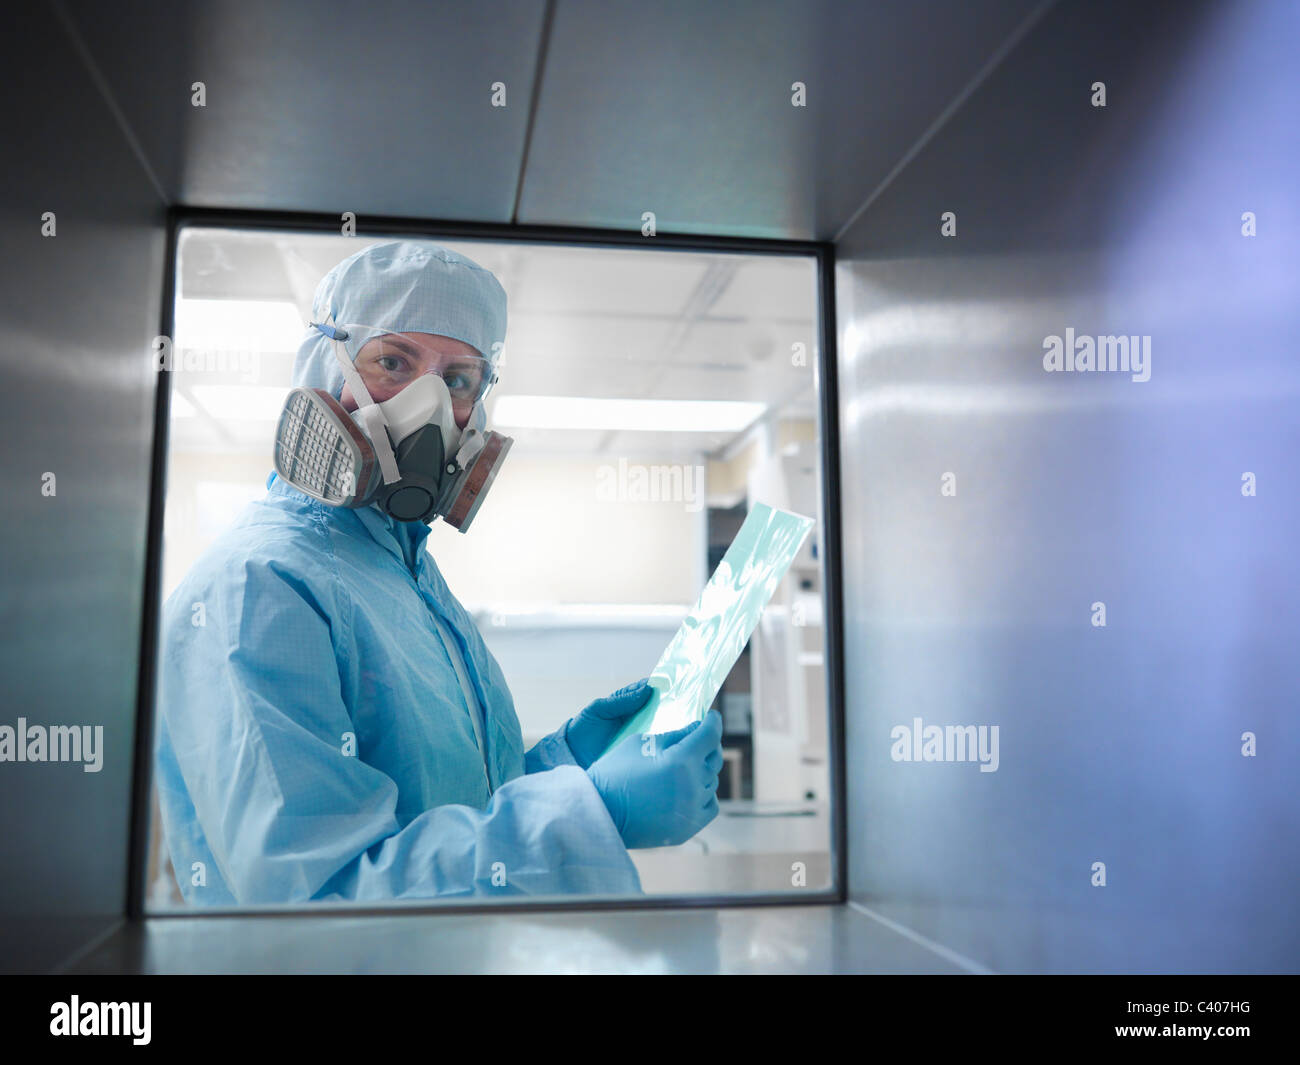 Scientist with product in clean room - Stock Image